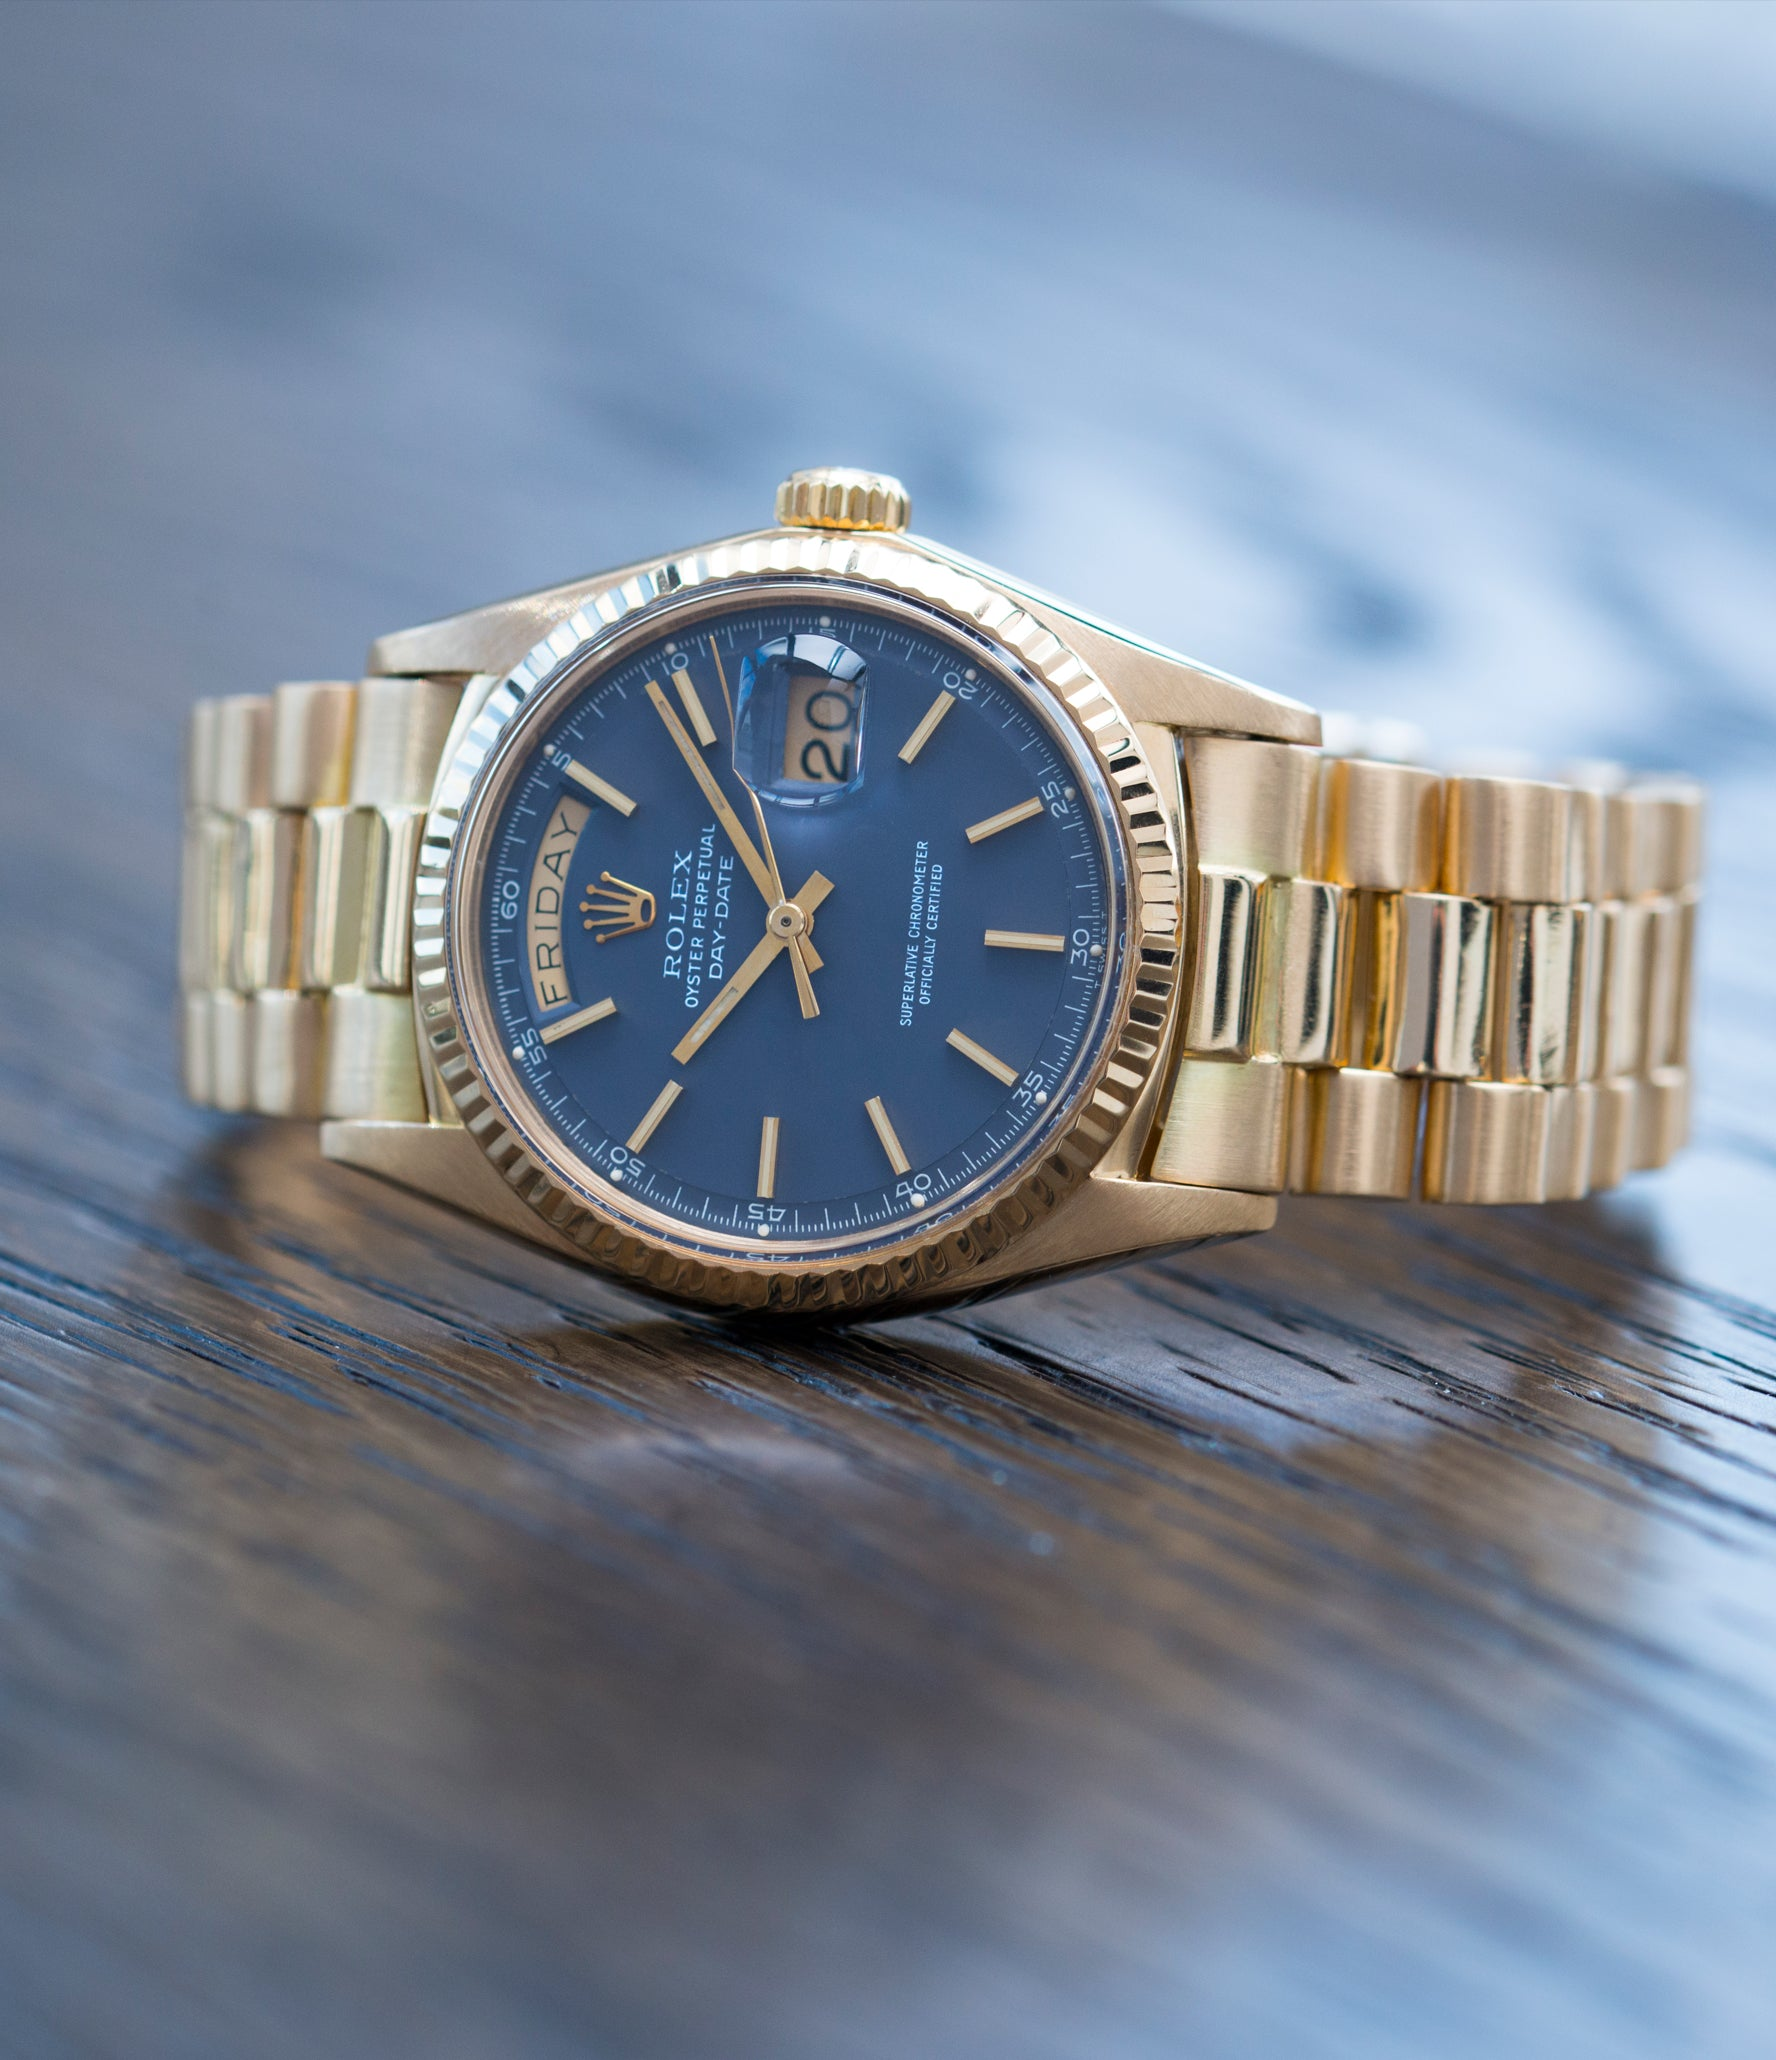 for sale vintage Rolex Day-Date 1803 Oyster Perpetual Cal. 1556 gold watch blue dial for sale online at A Collected Man London UK specialist of rare watches